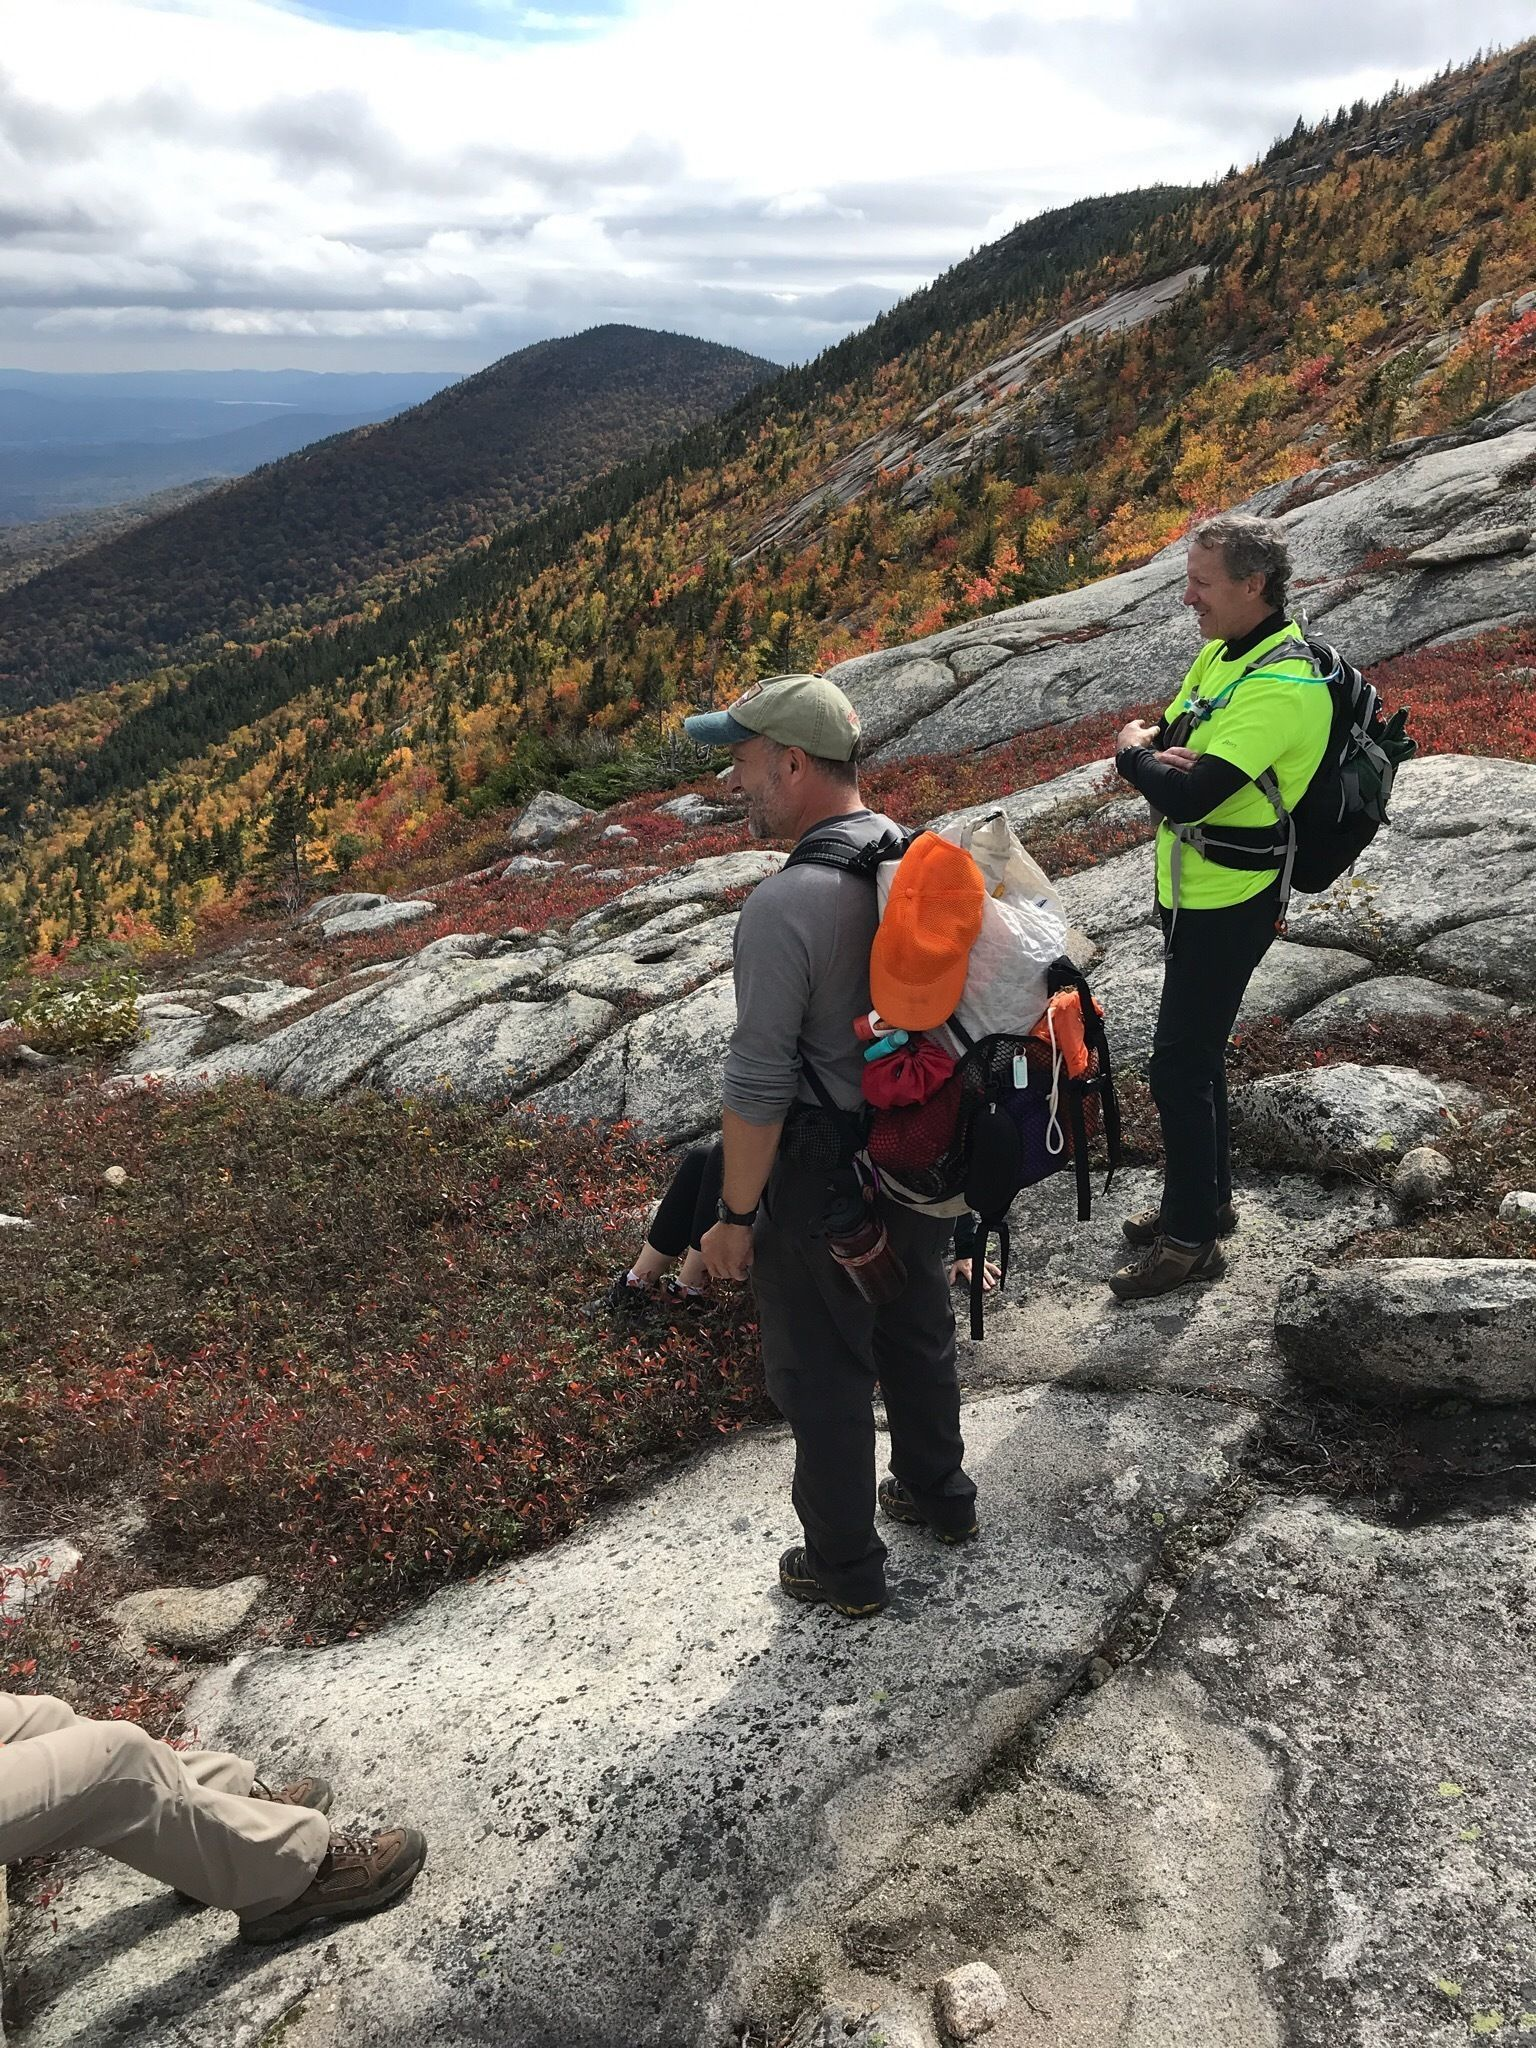 10 Of The Greatest Scenic Hiking Trails In New Hampshire